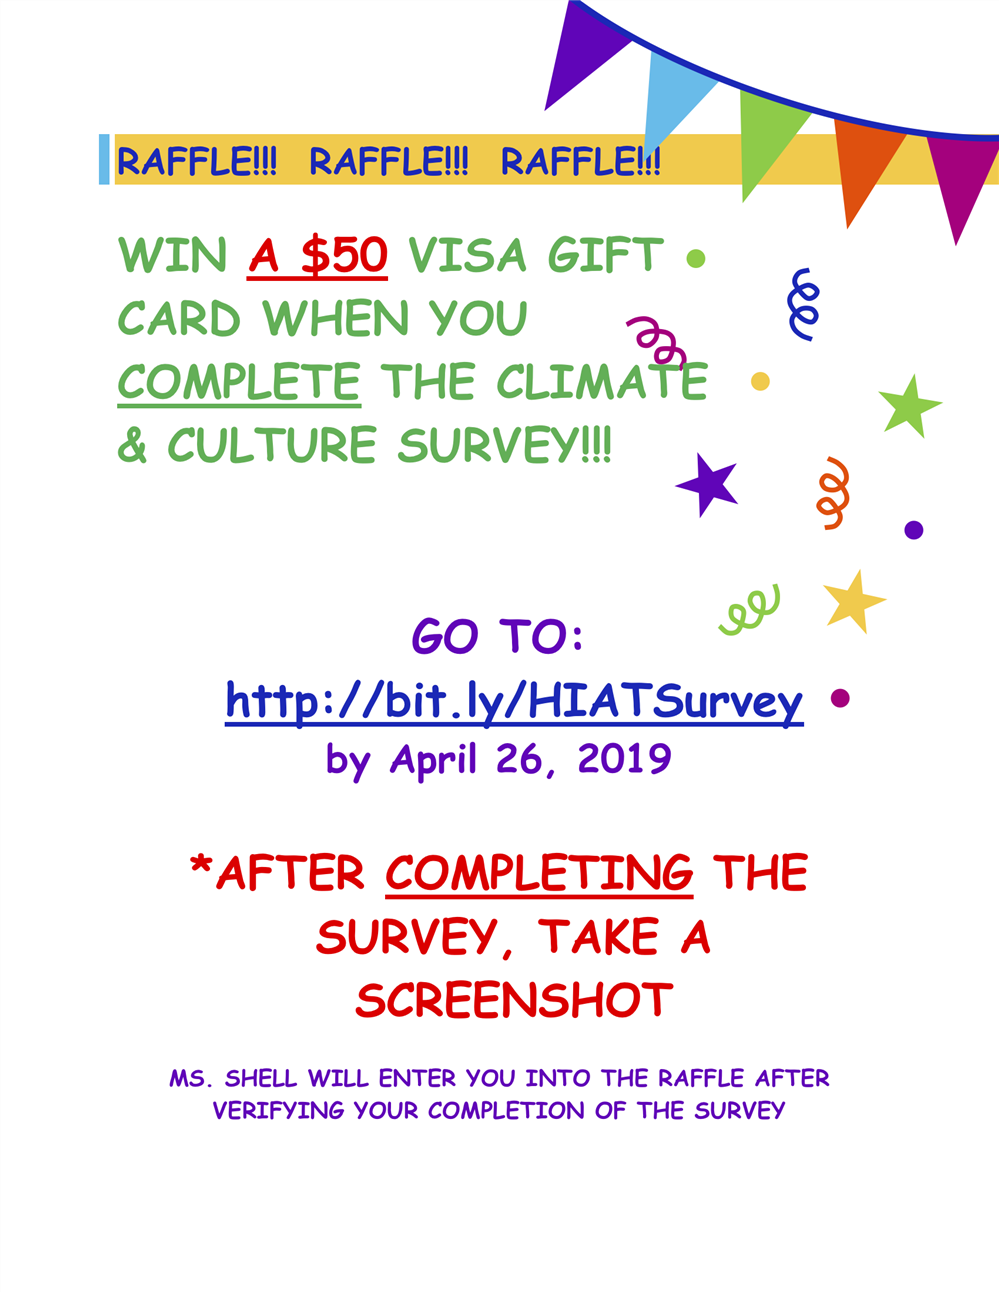 It's not too late to take HIAT's Culture and Climate Survey. Enter to win a $50 Gift Card